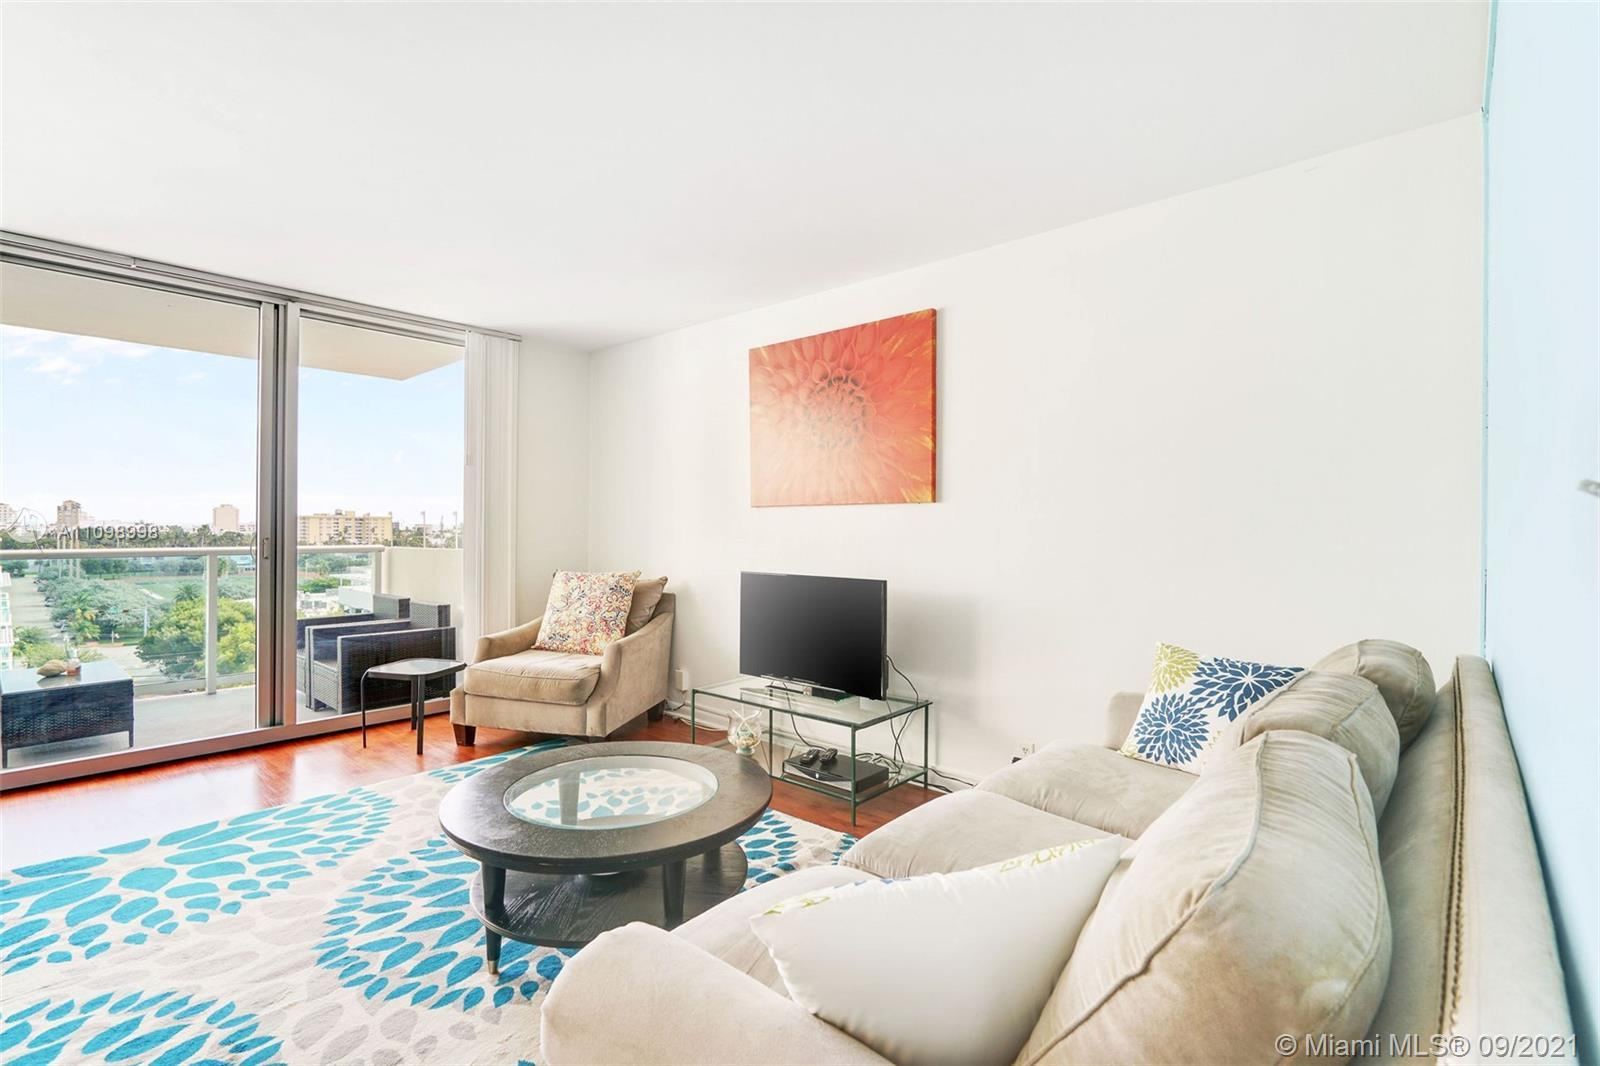 Bayfront in South Beach. Bright studio with private balcony and East view providing abundant morning